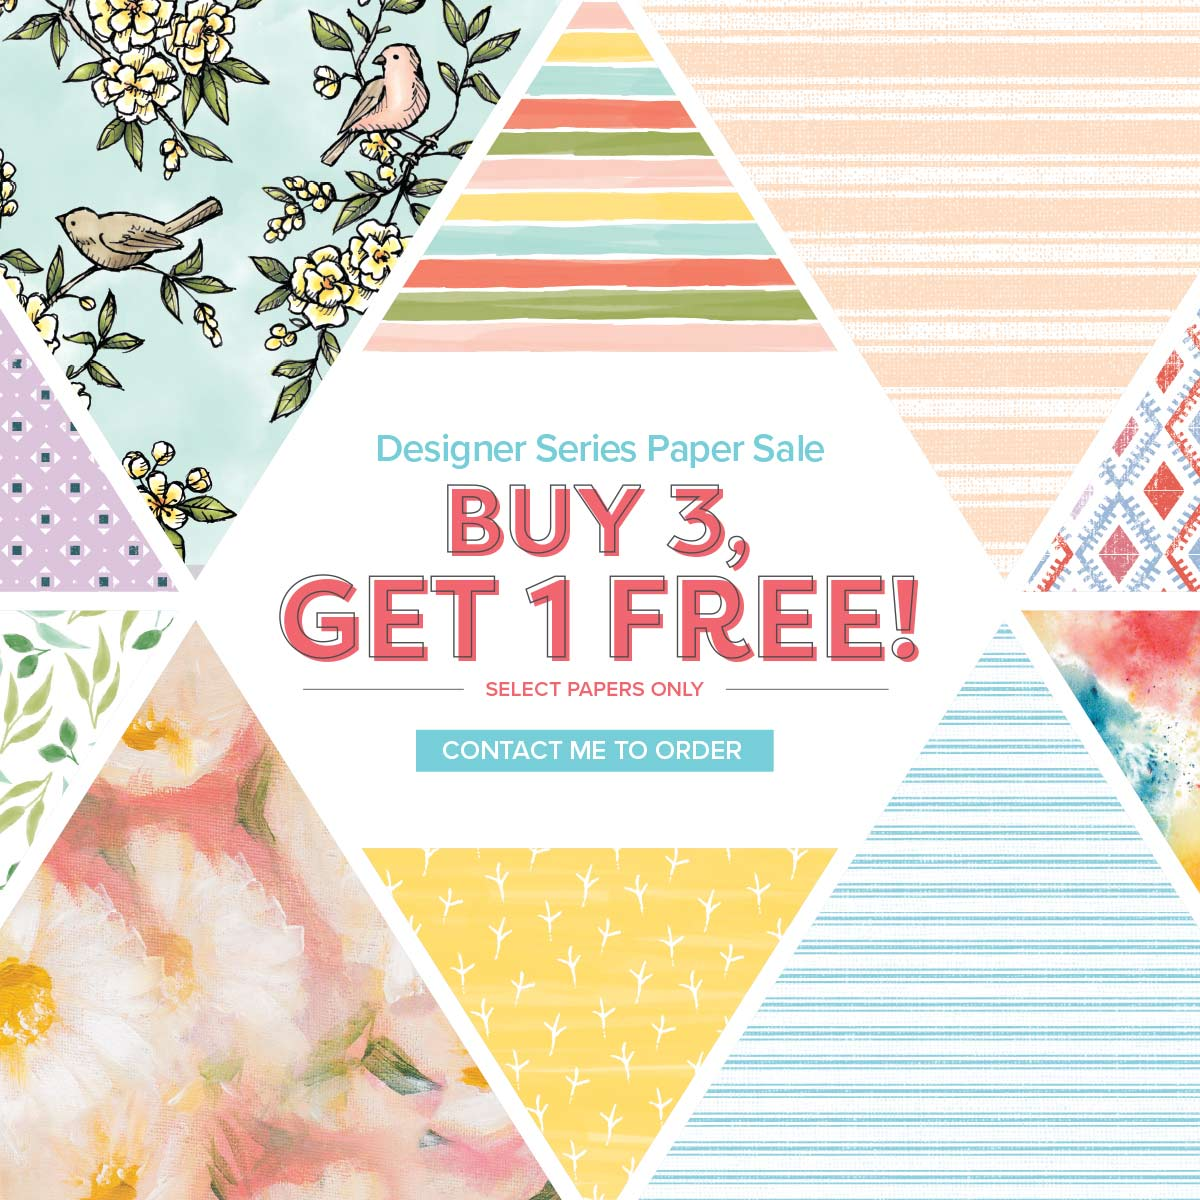 September Special purchase 3 packs of Designer Series Paper and get 1 free. Details on my blog here: https://wp.me/p59VWq-amE #stampinup #designerpaper #thestampcamp #paper